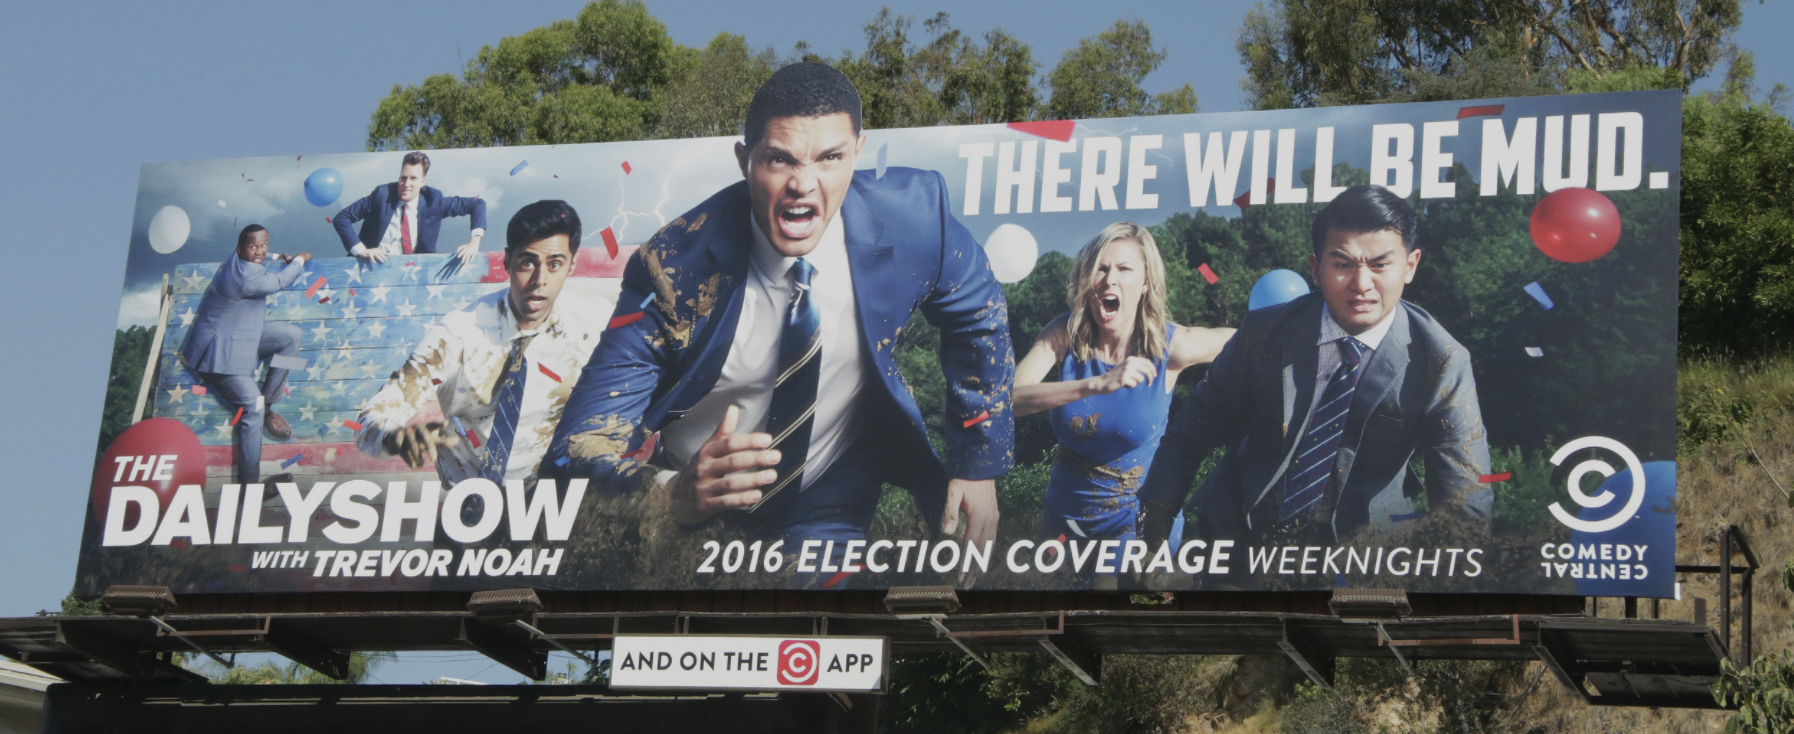 - THE DAILY SHOW WITH TREVOR NOAH, ELECTION COVERAGE TAGLINE: